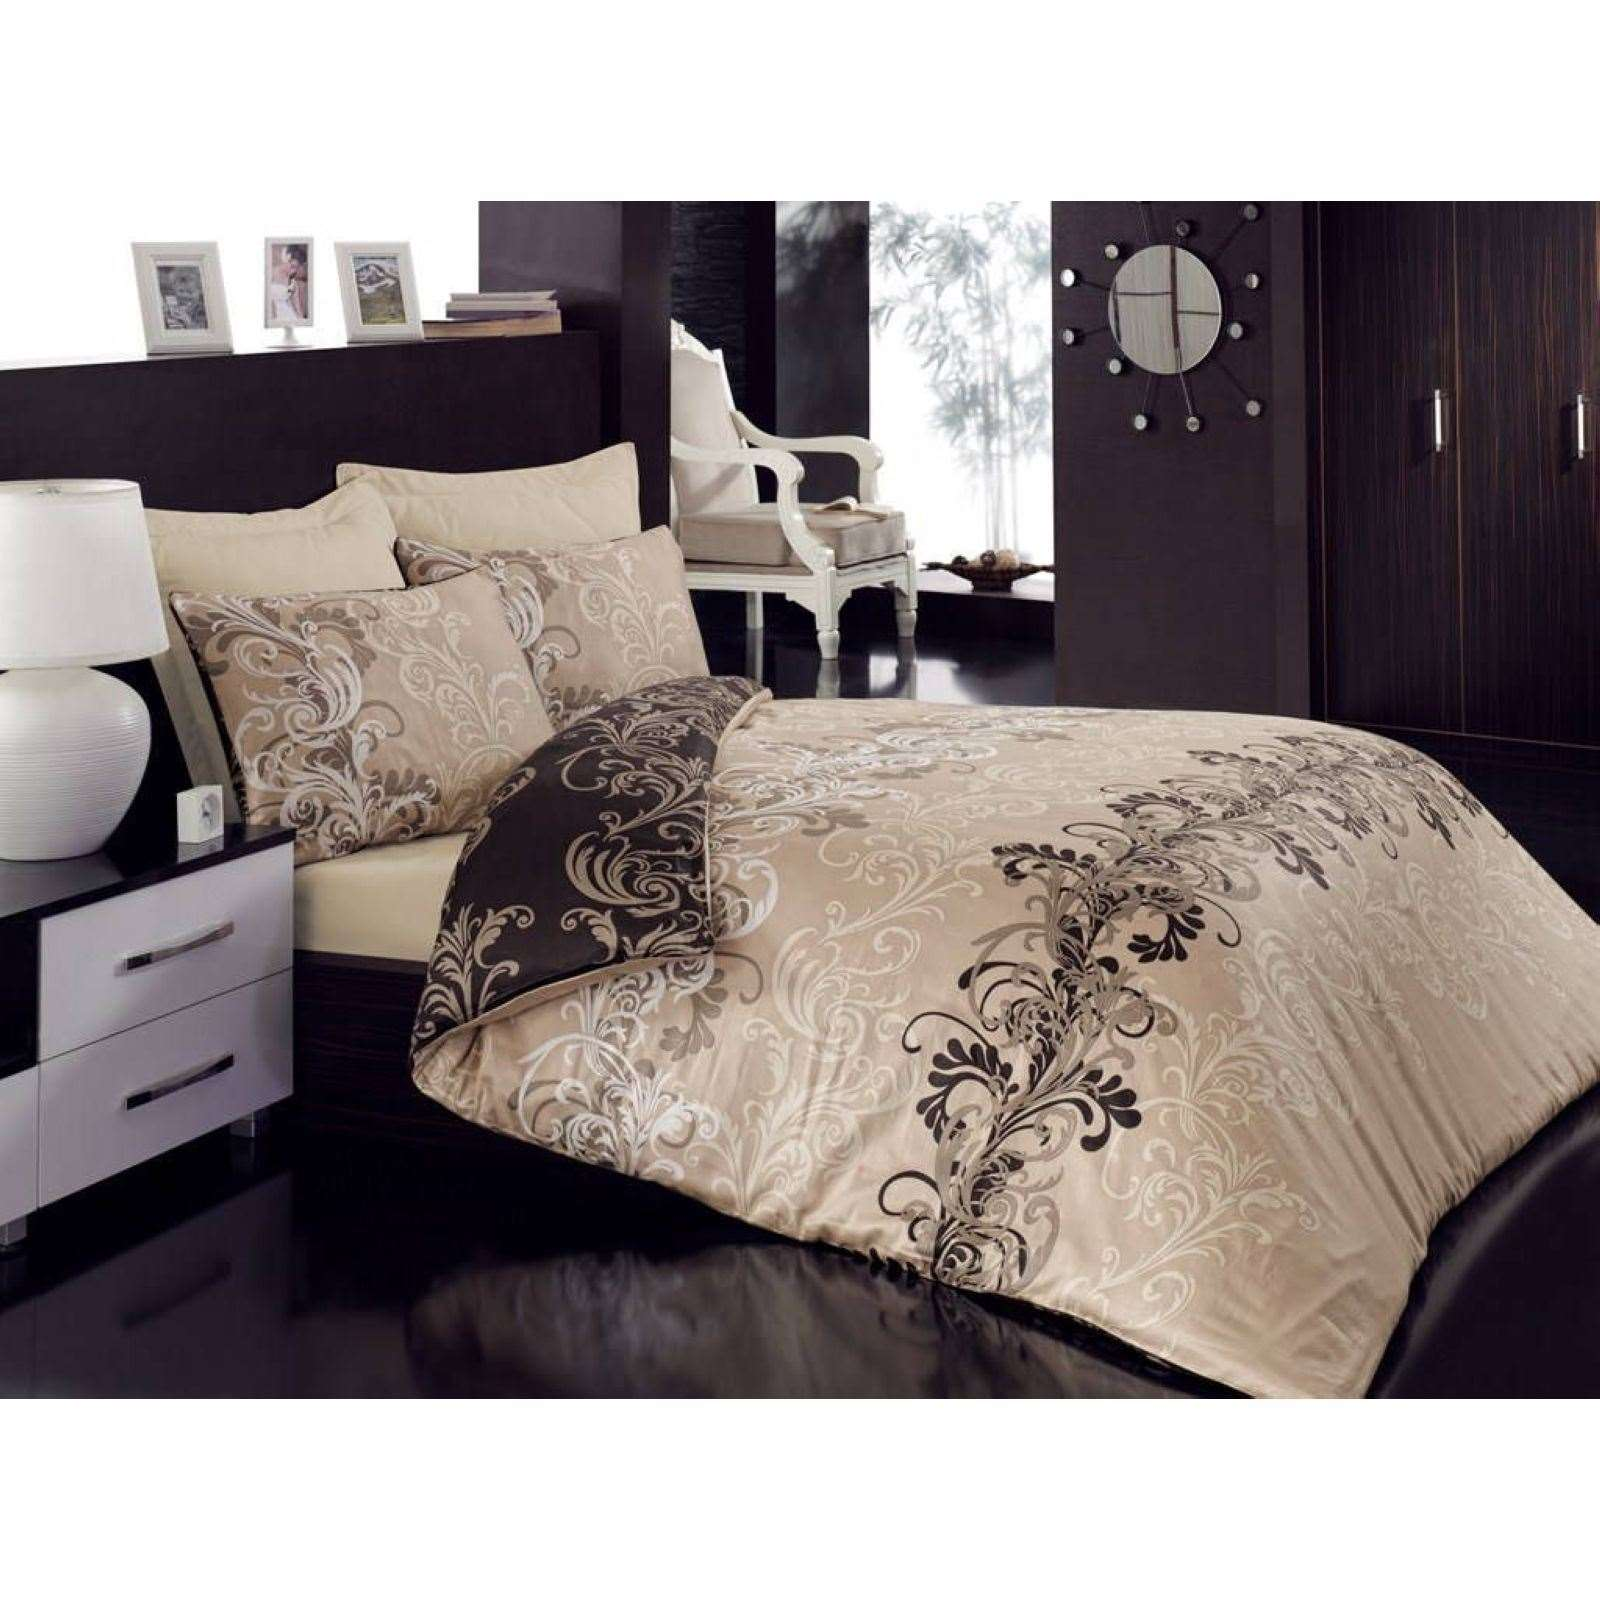 home sweet home parure de lit en satin de coton imprim brandalley. Black Bedroom Furniture Sets. Home Design Ideas